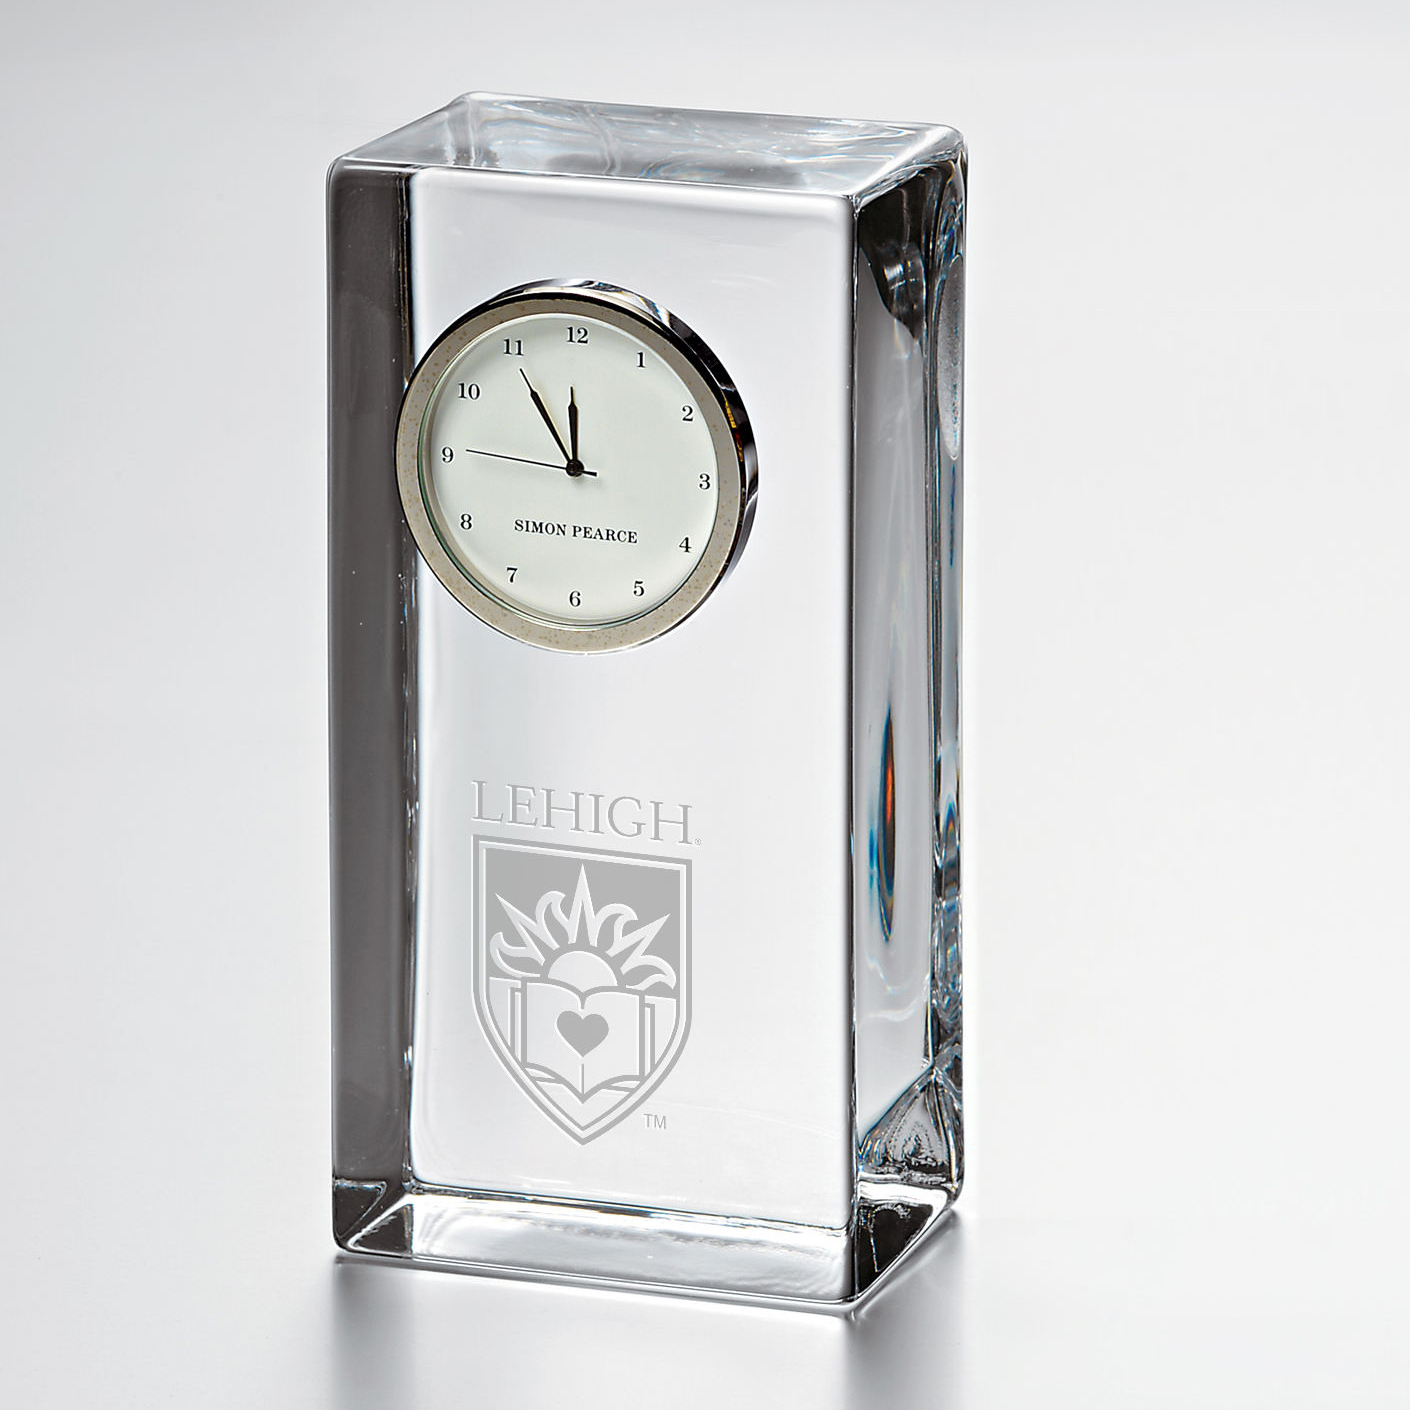 Lehigh Tall Desk Clock by Simon Pearce